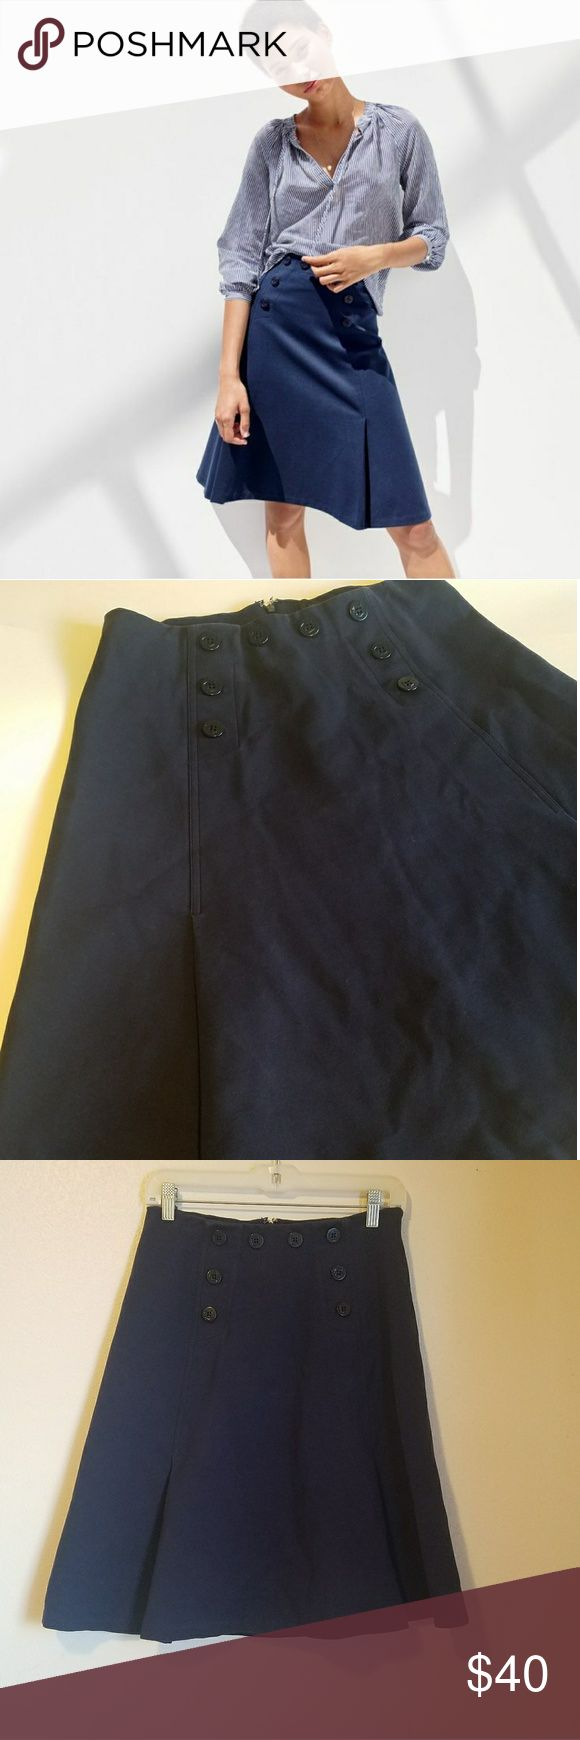 J. Crew size 6 navy blue nautical skirt Knee length, adorable J. Crew skirt in excellent condition.   Nautical style with anchor buttons.   Navy blue with a slight pleated style , womens size 6. J. Crew Skirts